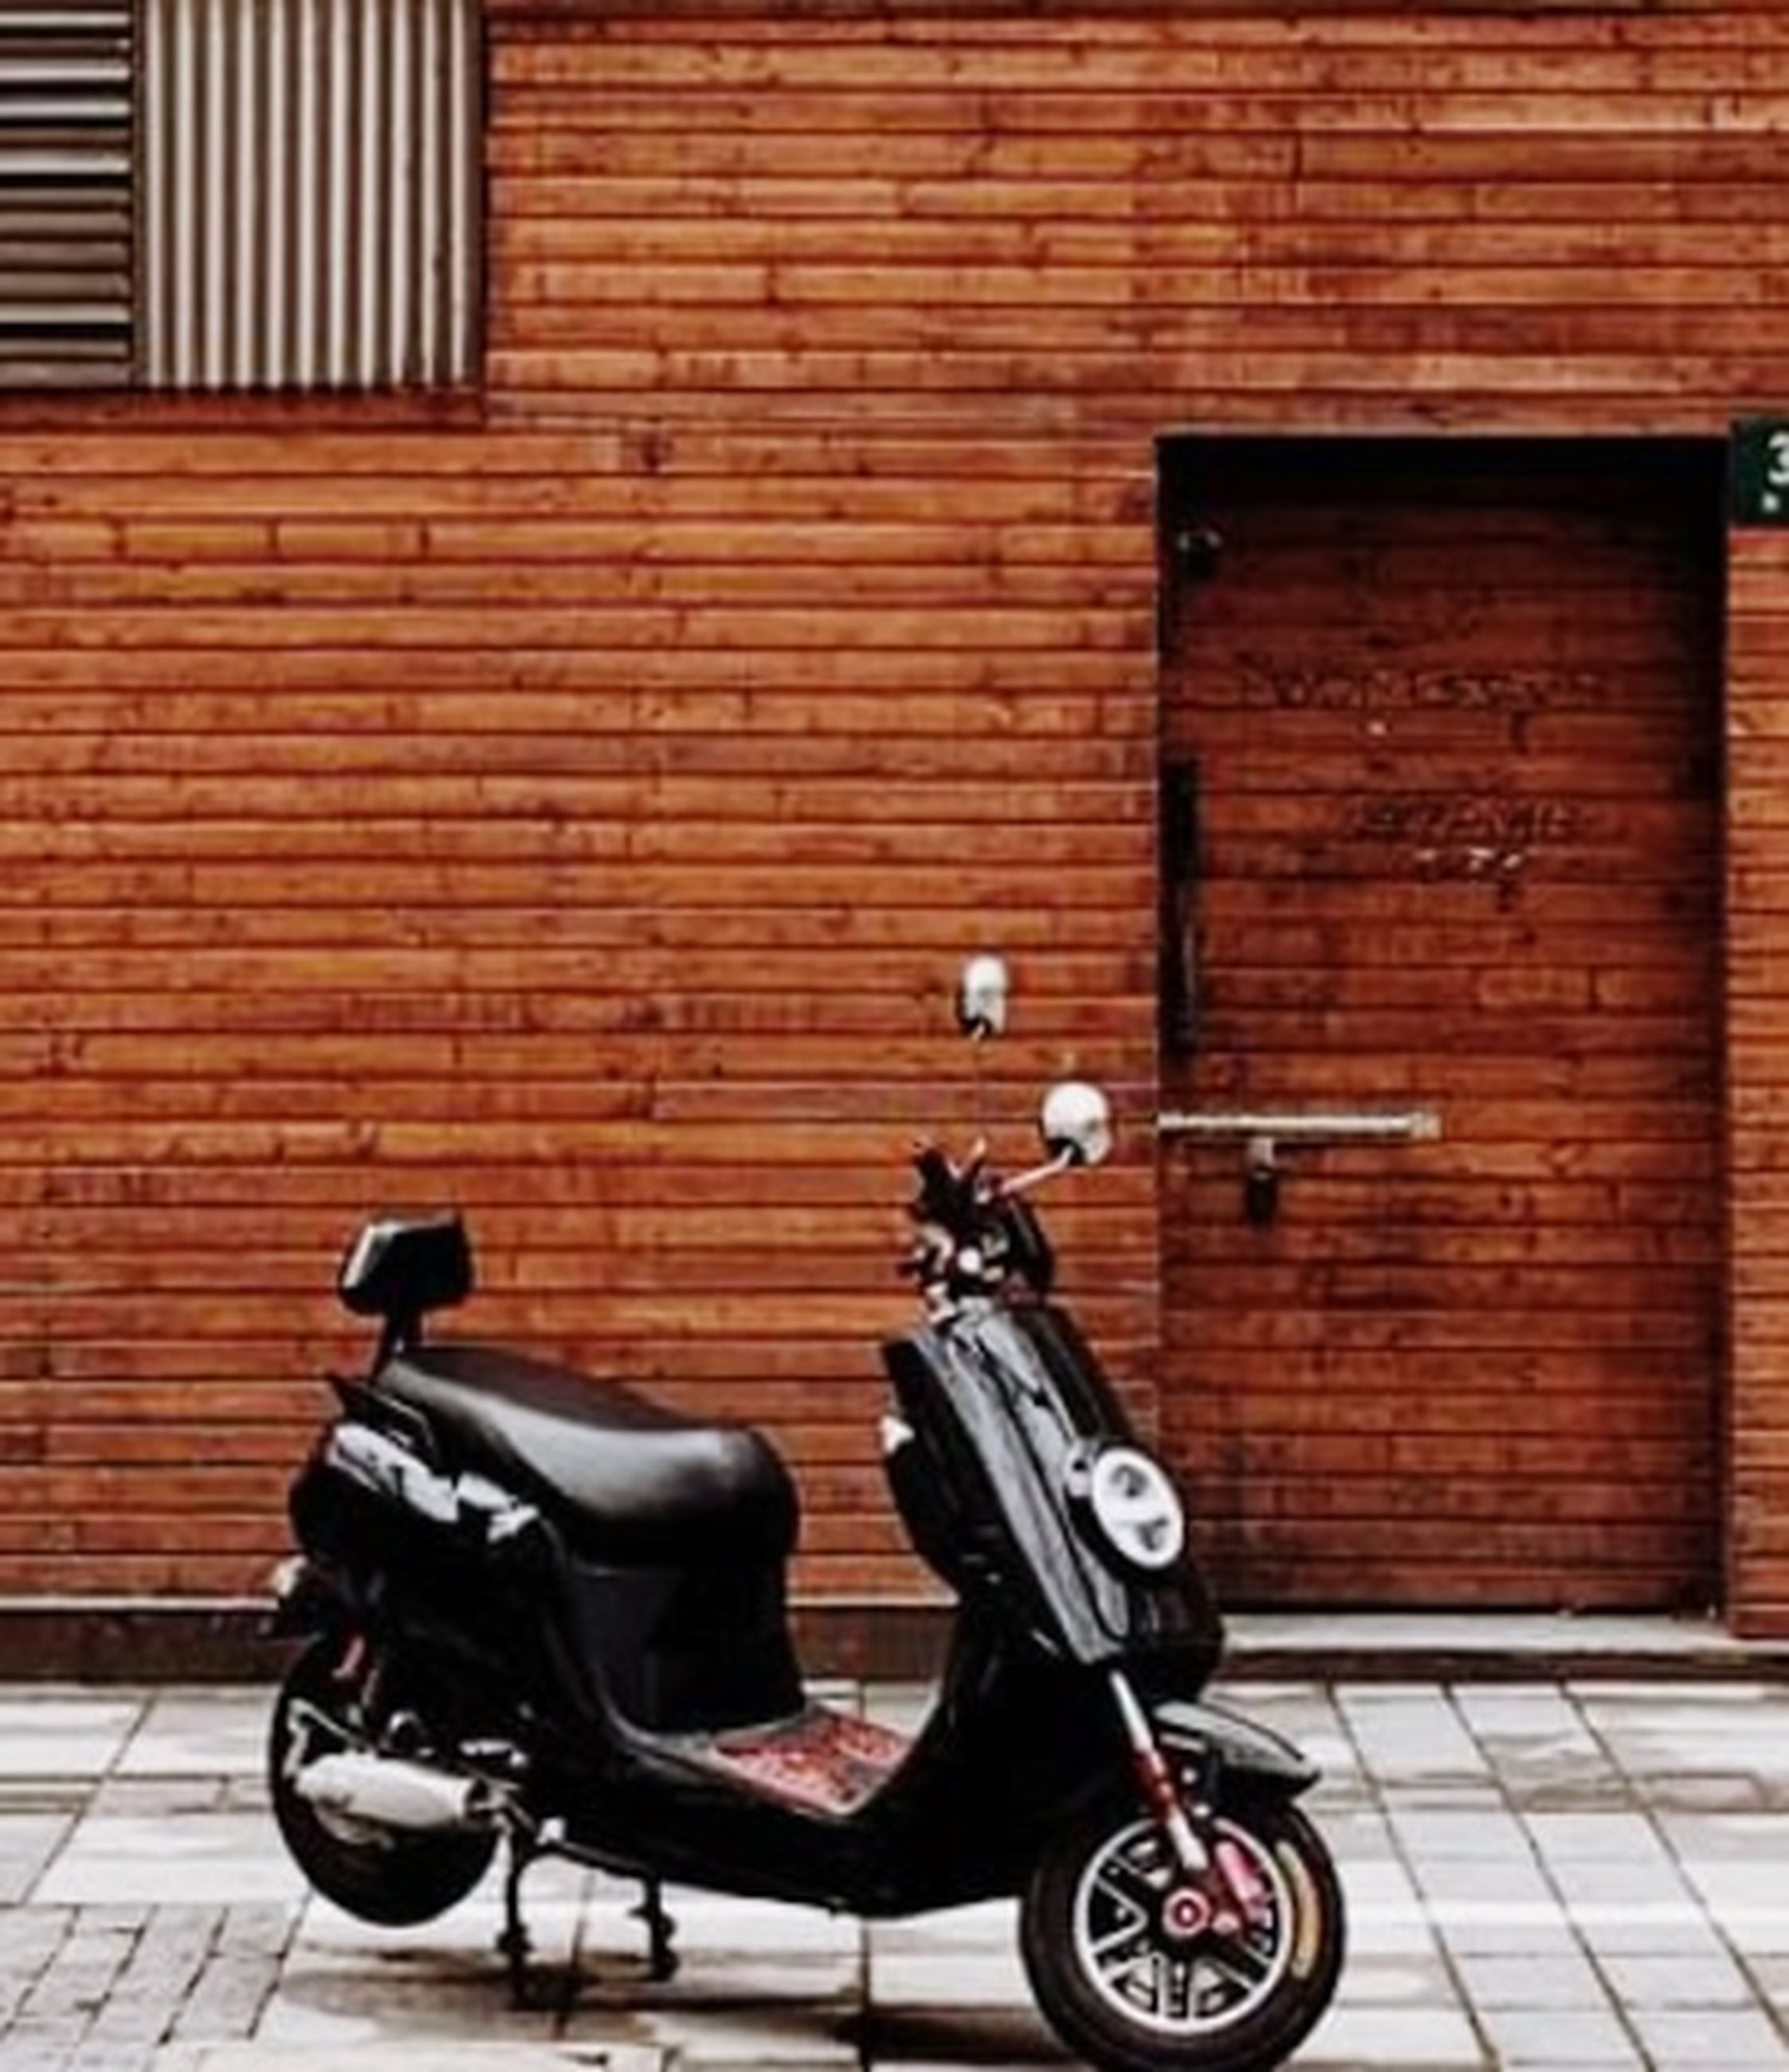 architecture, transportation, building exterior, mode of transportation, brick wall, wall, built structure, brick, city, wall - building feature, vehicle, scooter, land vehicle, no people, day, street, footpath, side view, motor scooter, motorcycle, sidewalk, outdoors, wheel, bicycle